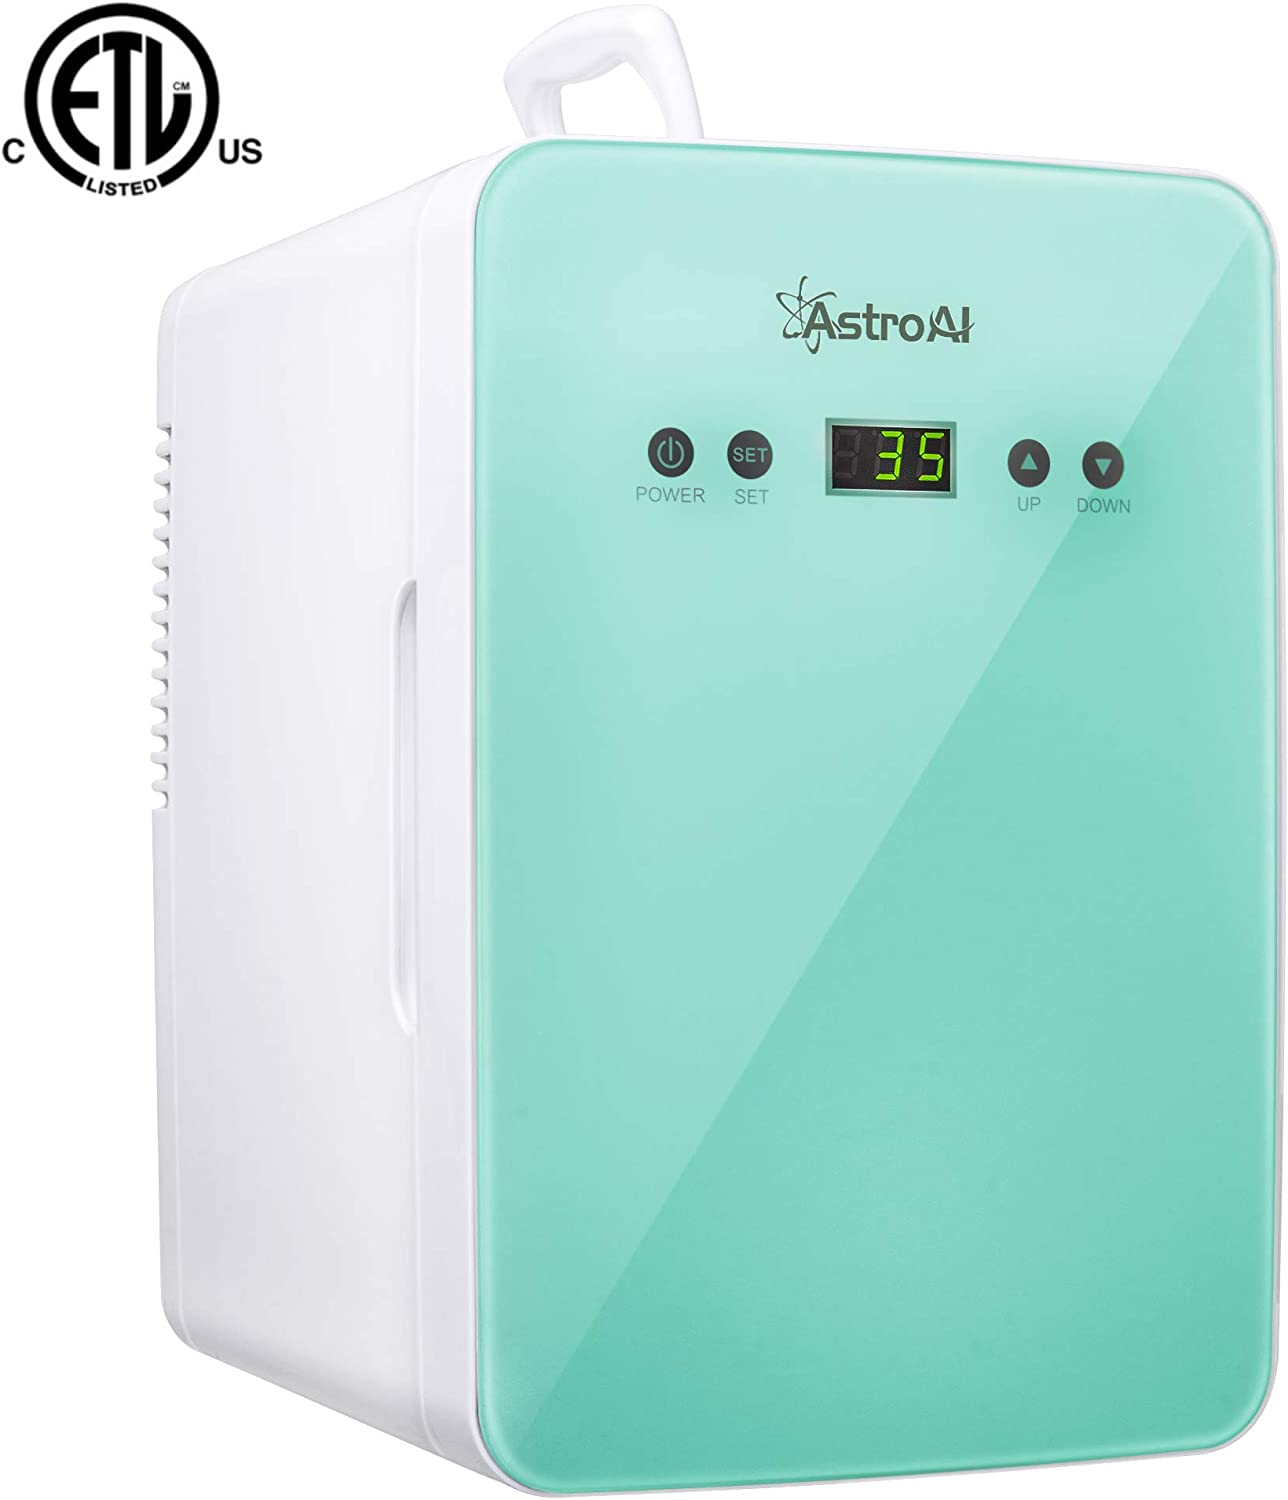 AstroAI Mini Fridge 6 Liter/8 Can Skincare Fridge - with Temperature Control - AC/12V DC Portable Thermoelectric Cooler and Warmer for Bedroom, Cosmetics, Medications, Breastmilk (Teal)